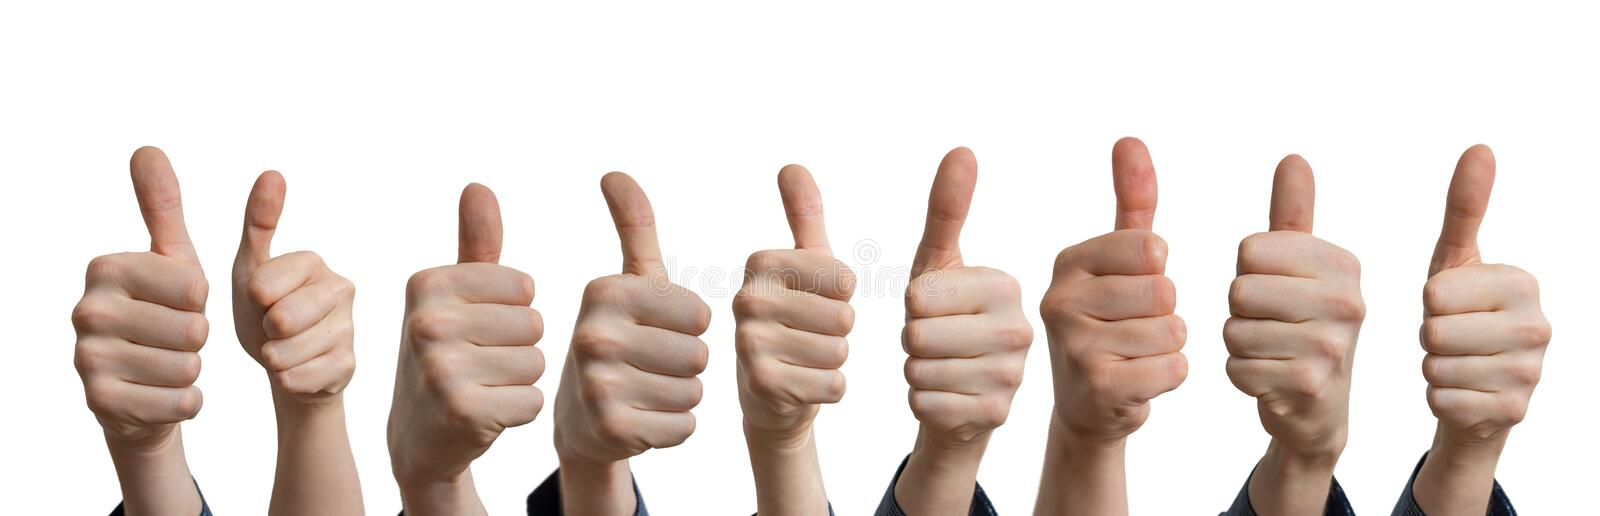 Panoramatic photo of many thumbs up. Isolated on white background royalty free stock images